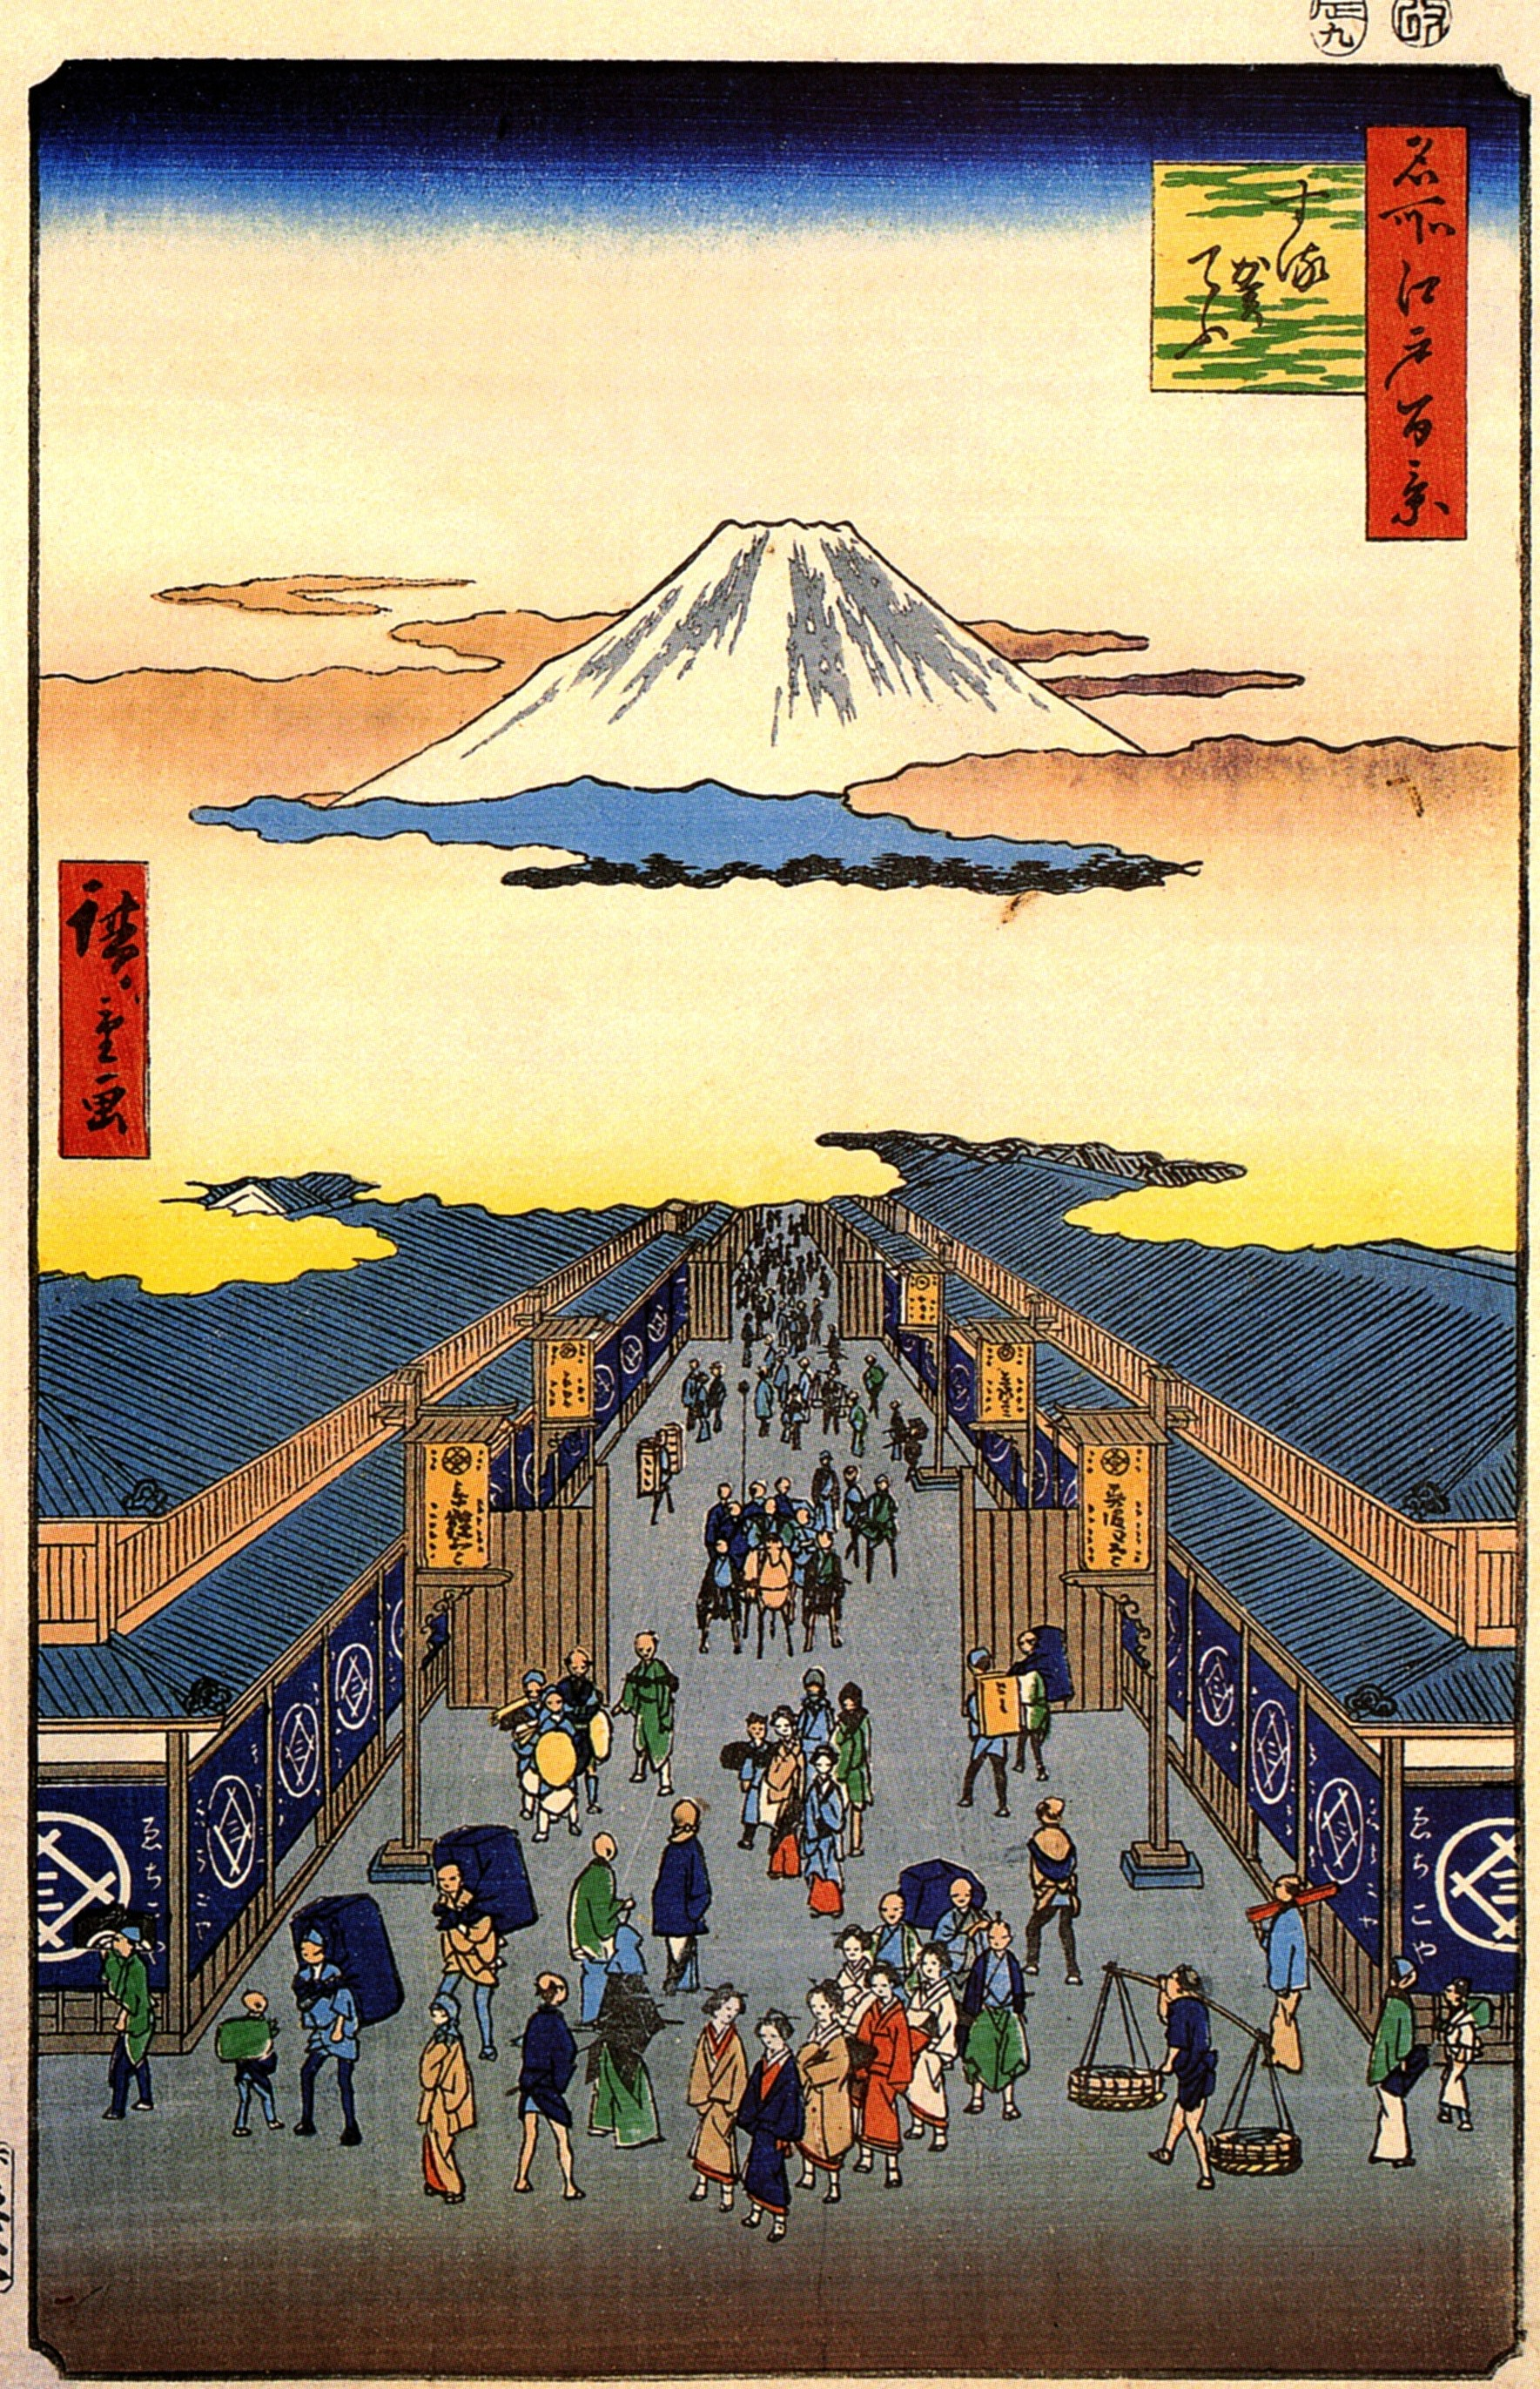 the edo period of japan Tokugawa period, also called edo period, (1603–1867), the final period of traditional japan, a time of internal peace, political stability, and economic growth under the shogunate (military dictatorship) founded by tokugawa ieyasu.